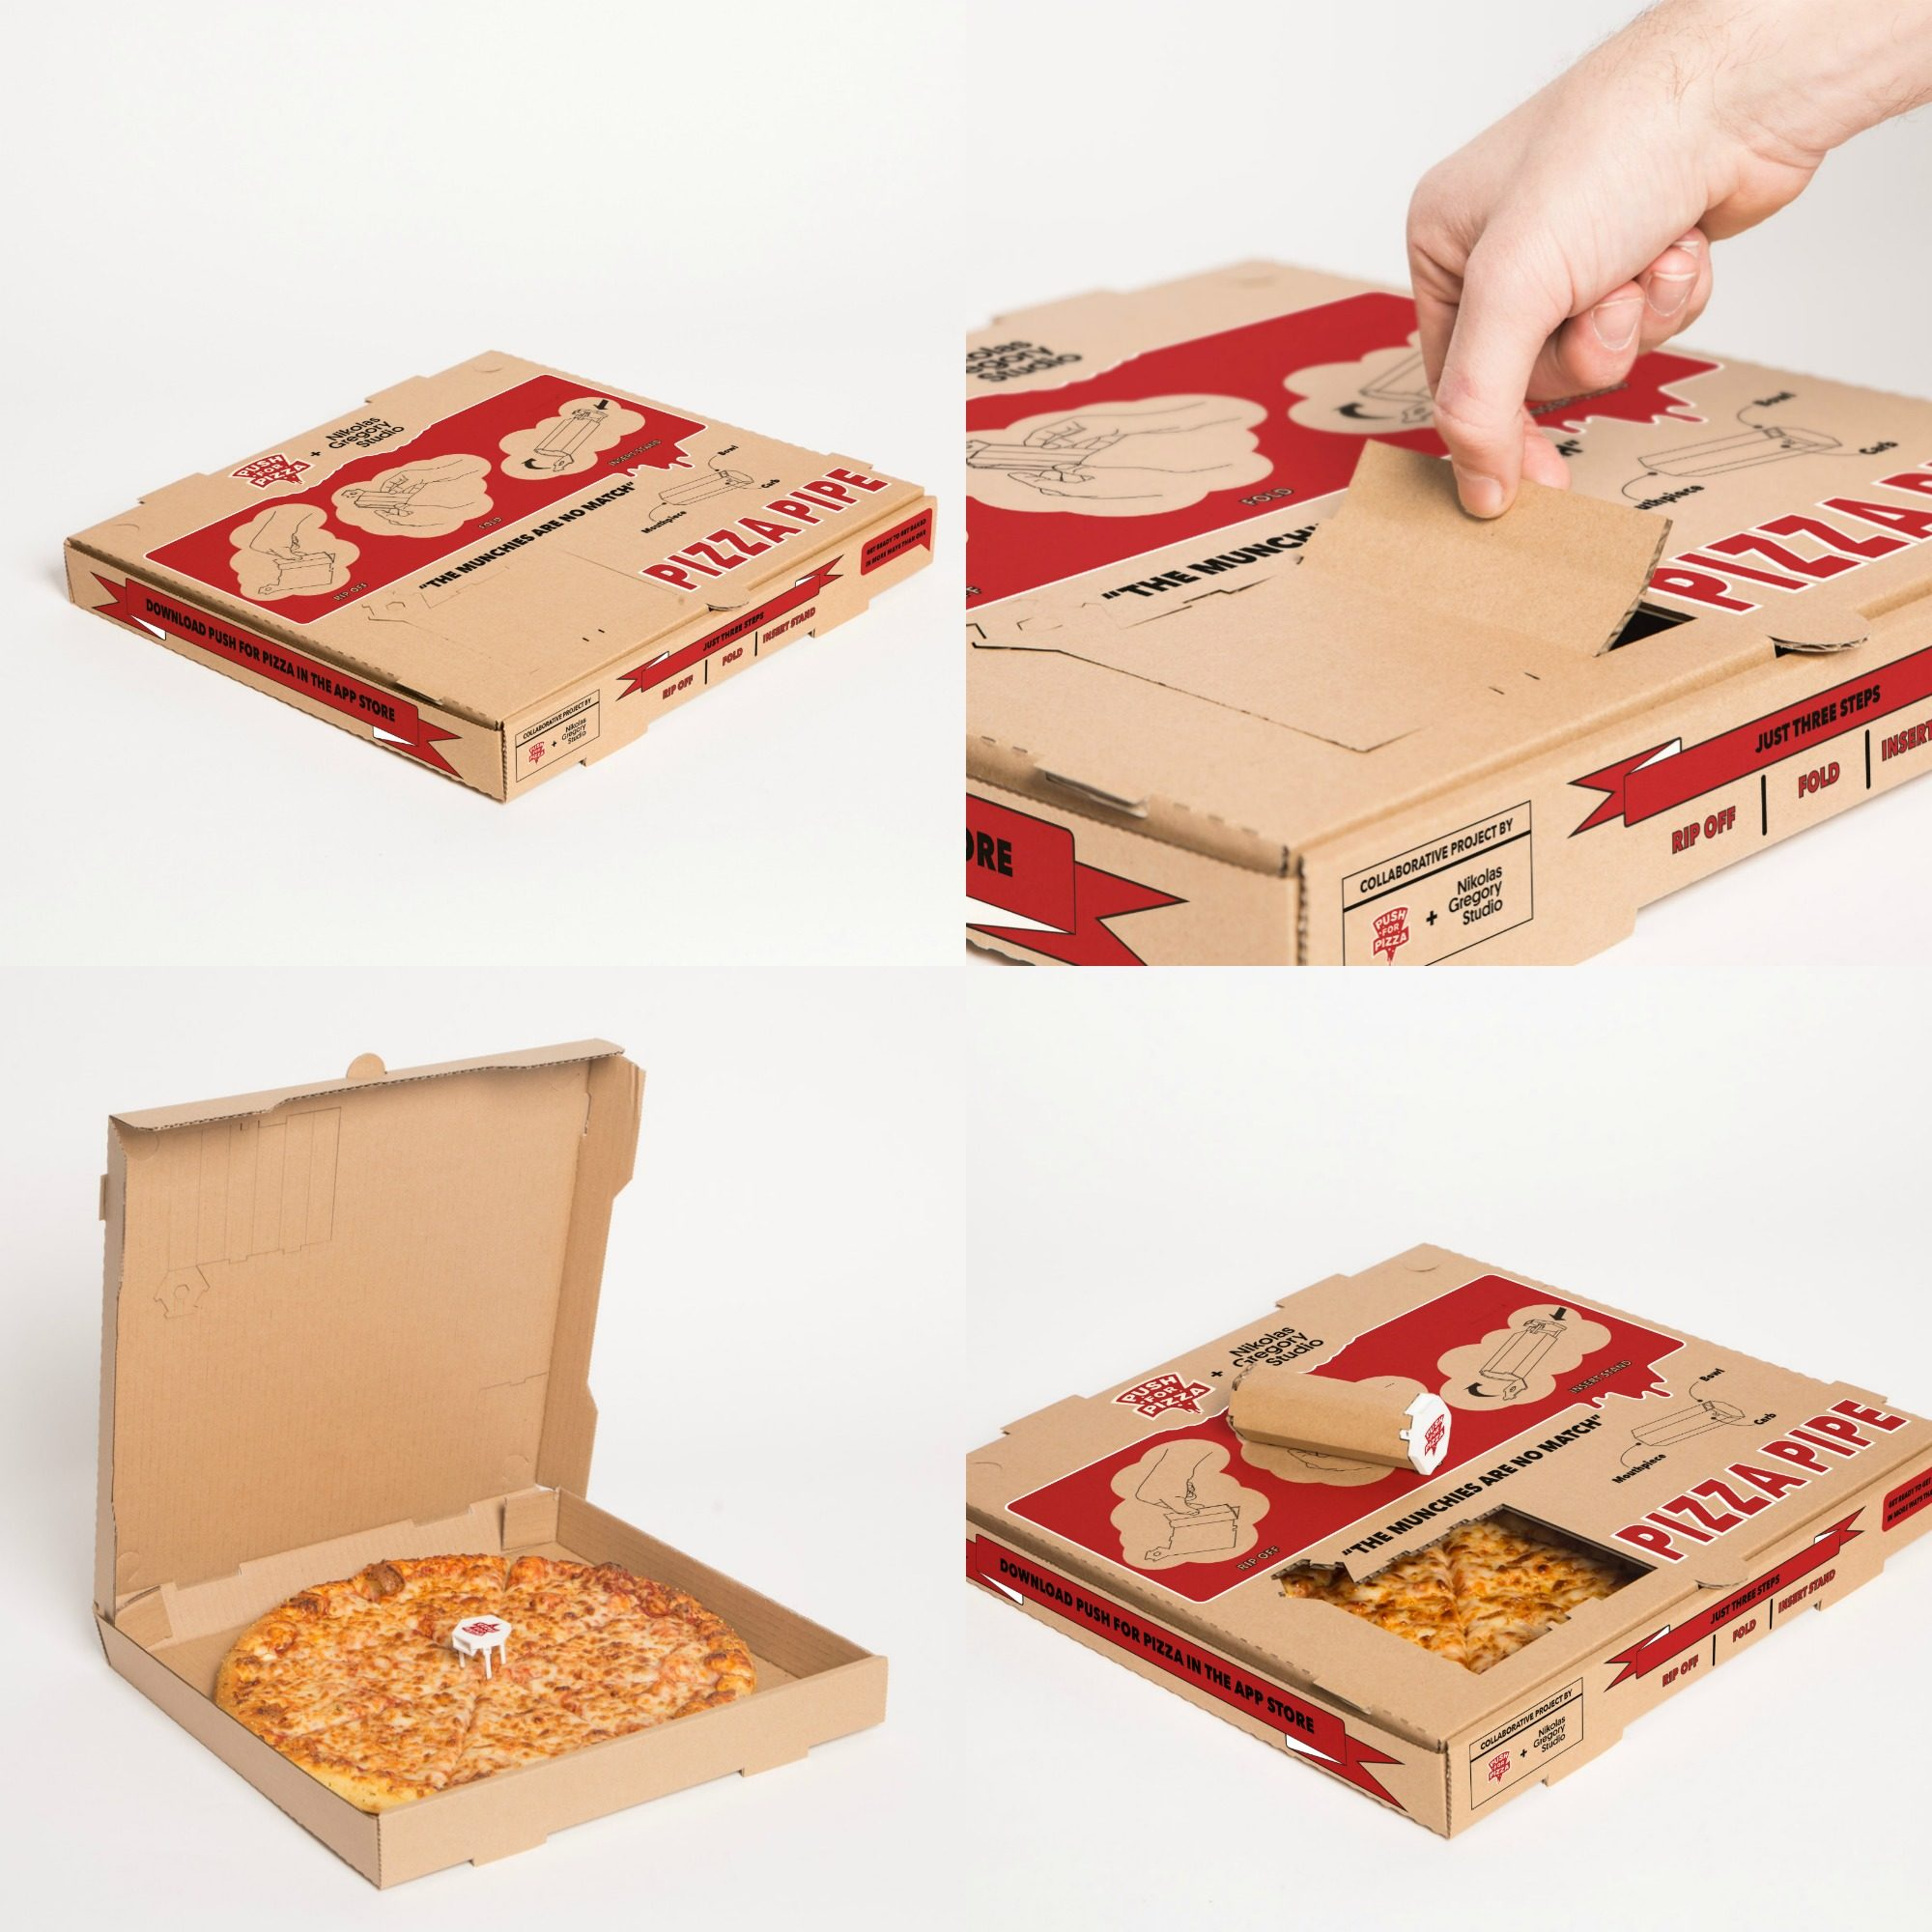 The steps to transform your pizza box, Push For Pizza